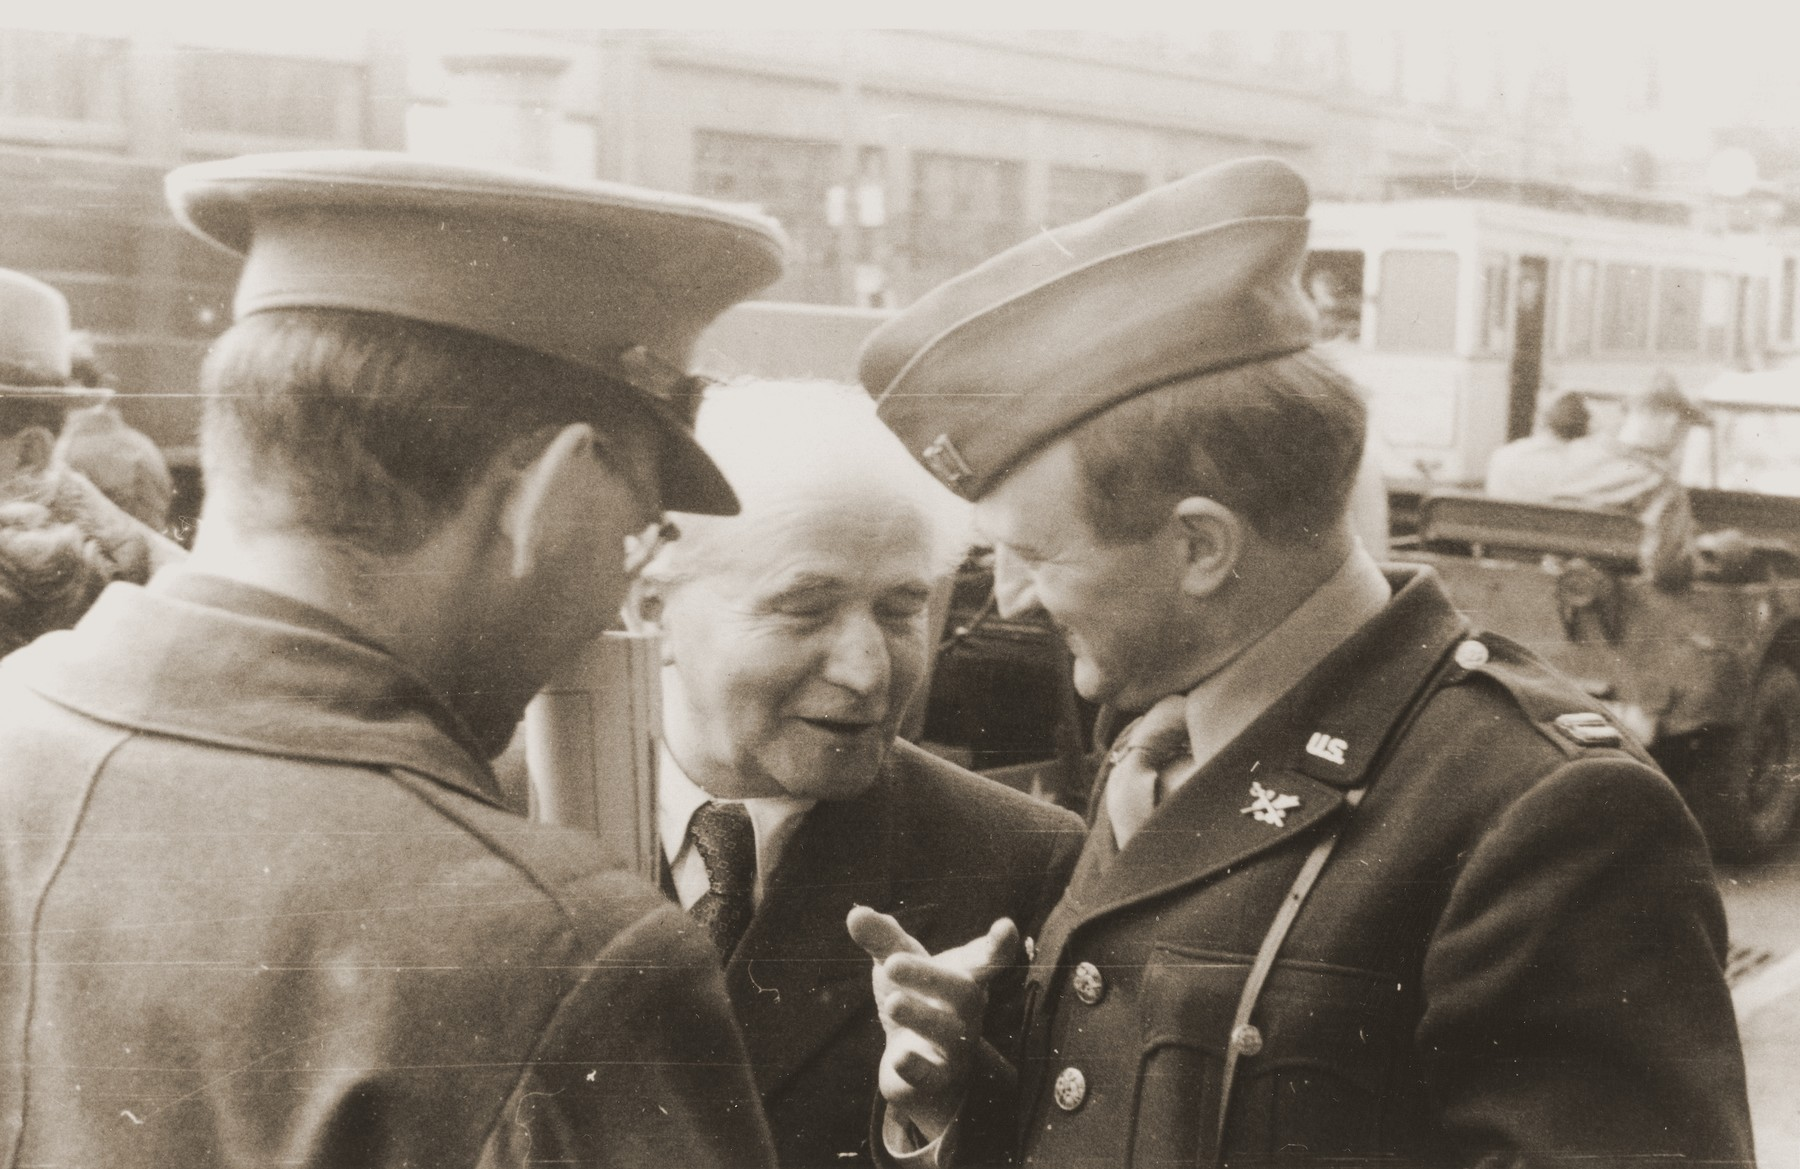 David Ben-Gurion chats with Abraham Hyman (right) and Chaim Hoffmann (left) during an official visit to the American zone of Germany.    Ben-Gurion is on his way to the Babenhausen bei Aschaffenburg displaced persons camp near Frankfurt.